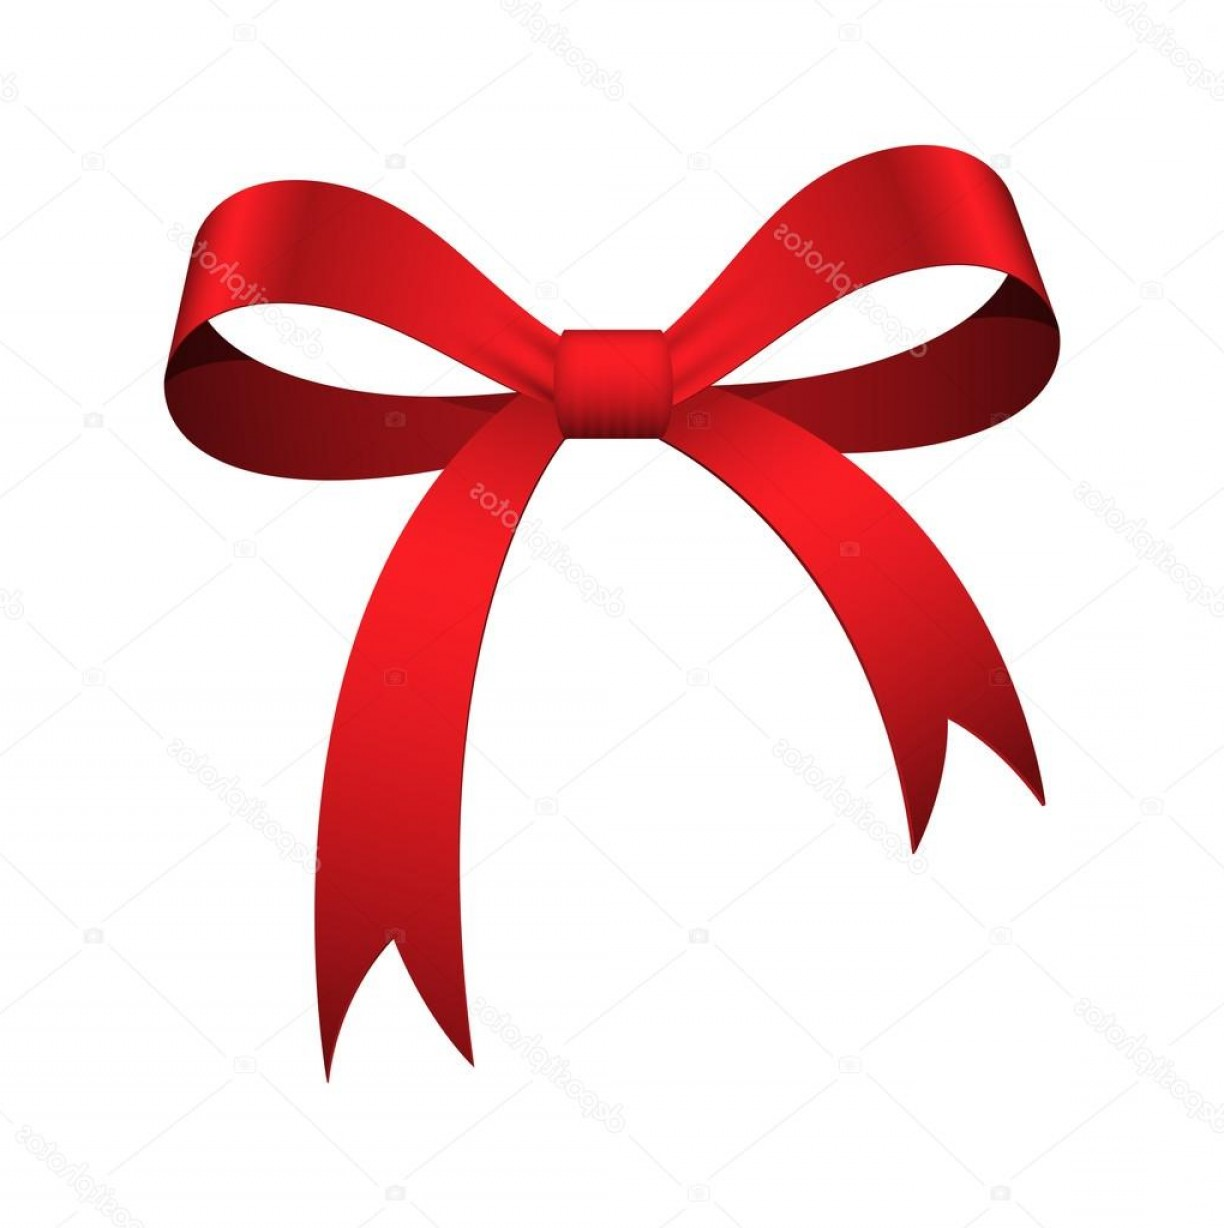 1224x1228 Christmas Red Bow Vector Shopatcloth